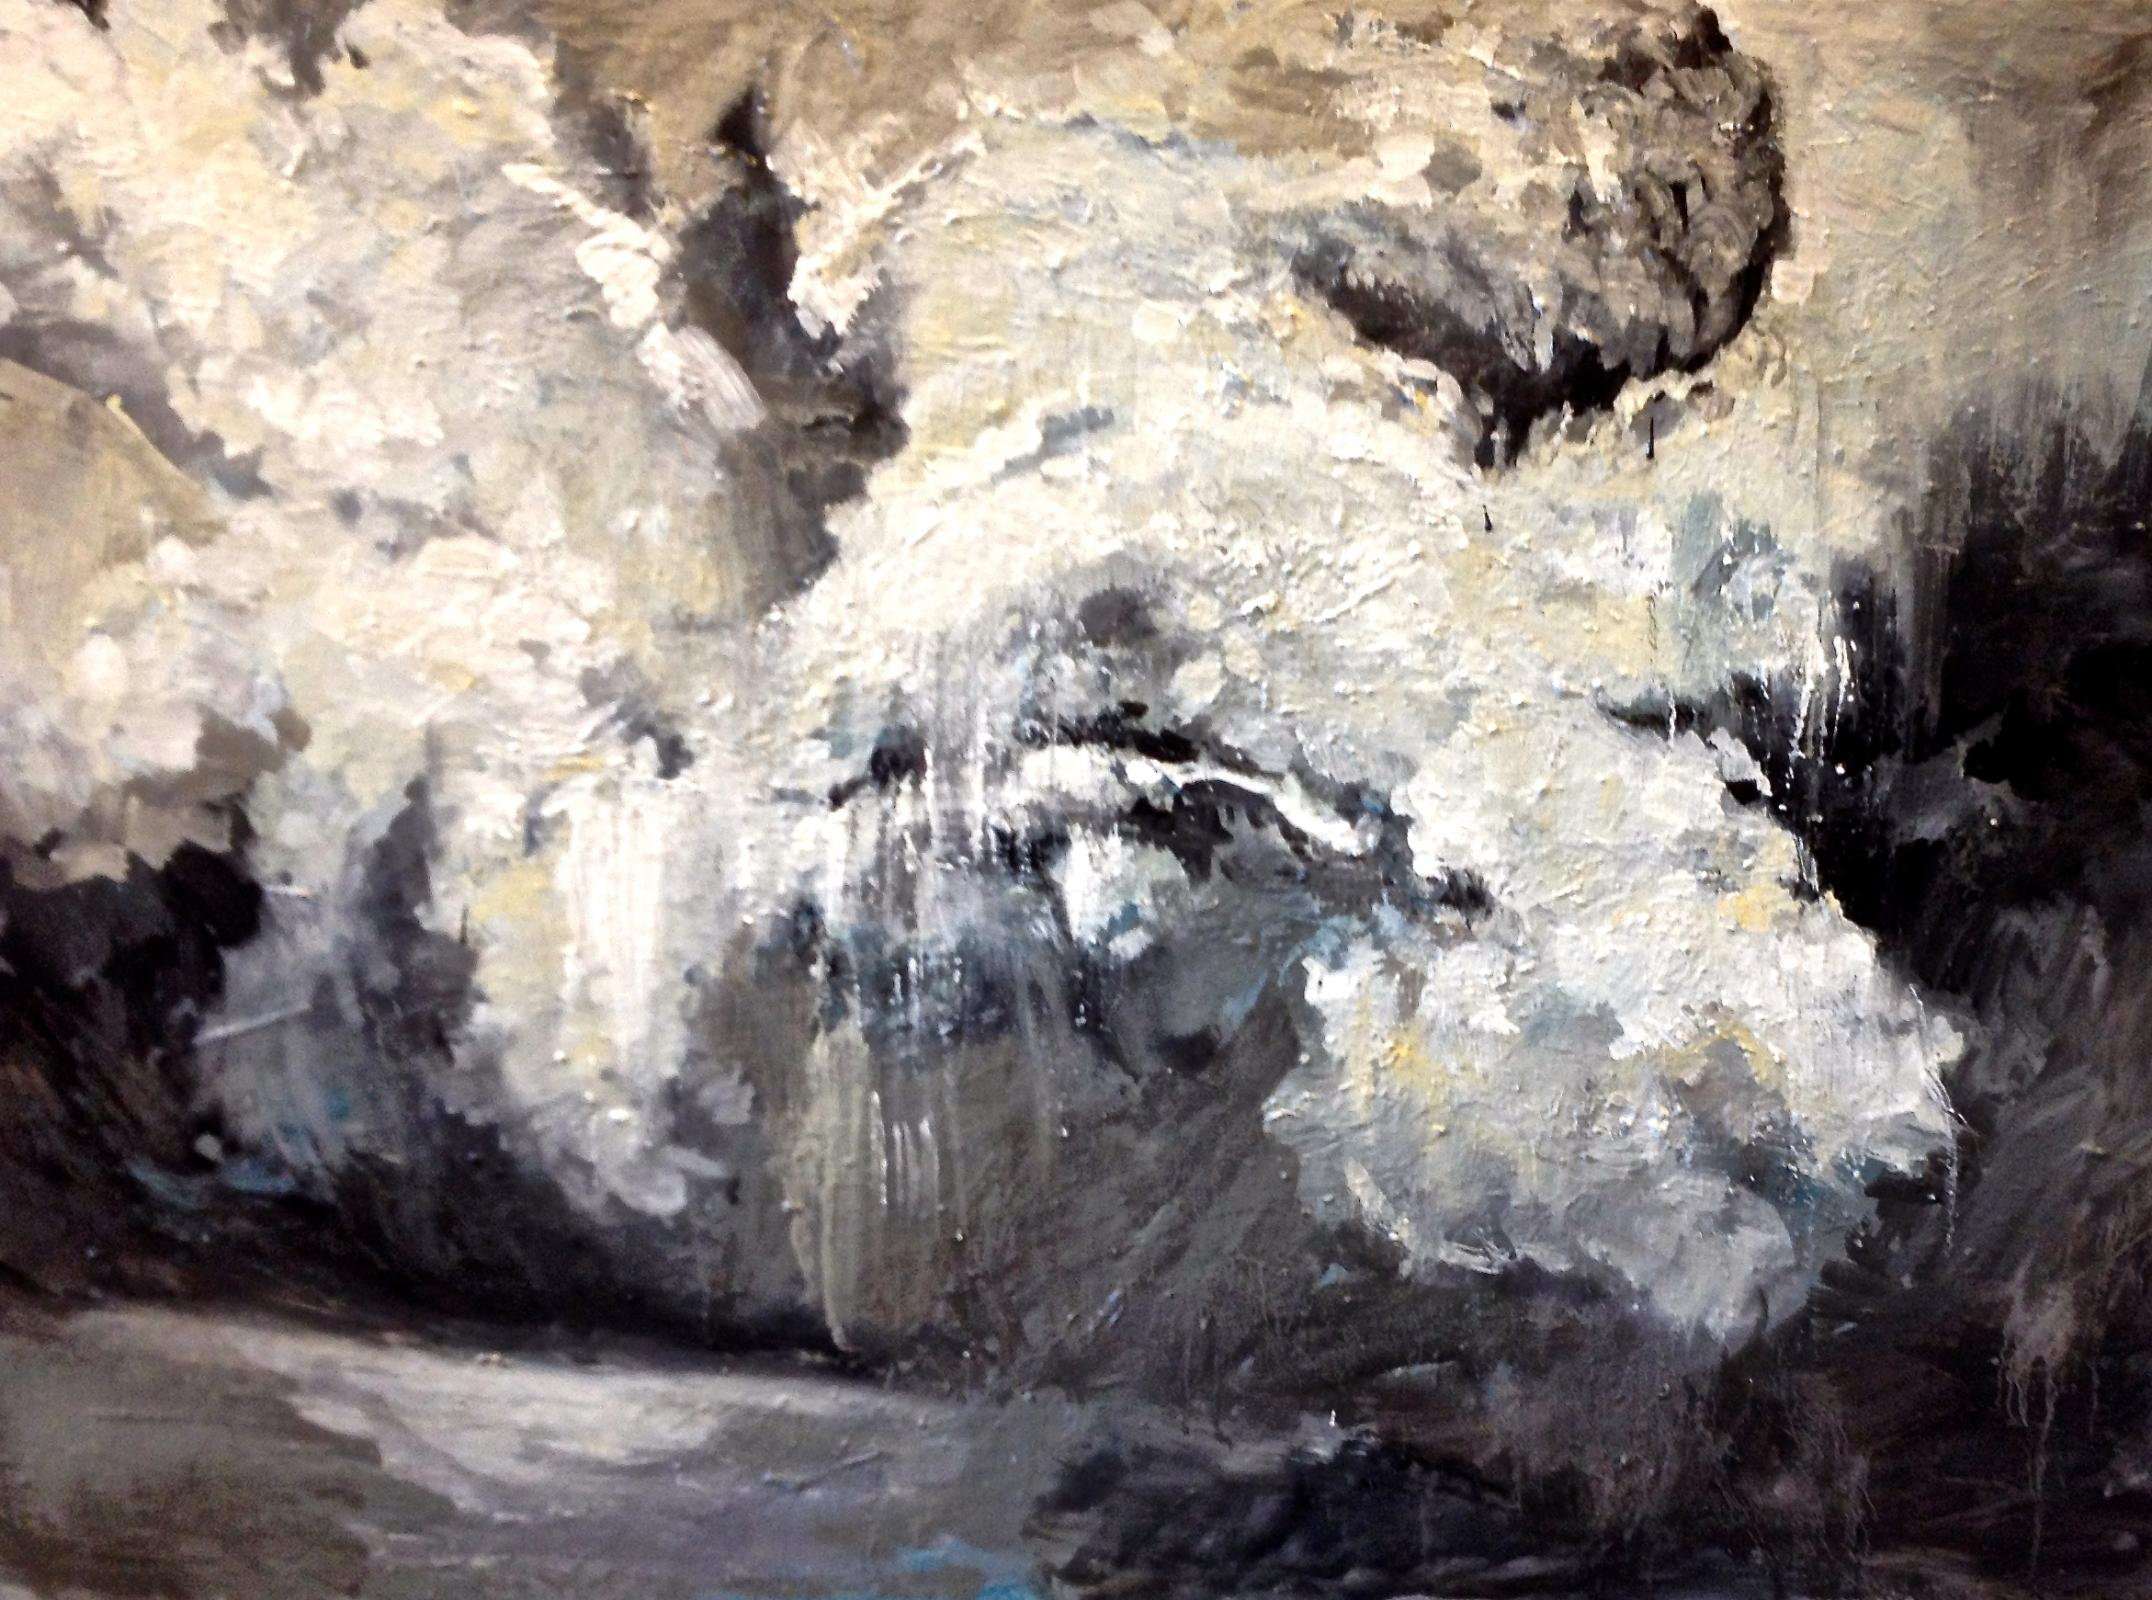 Storm 60cm x 90cm oil/canvas 2016 raszH1470126742.jpg